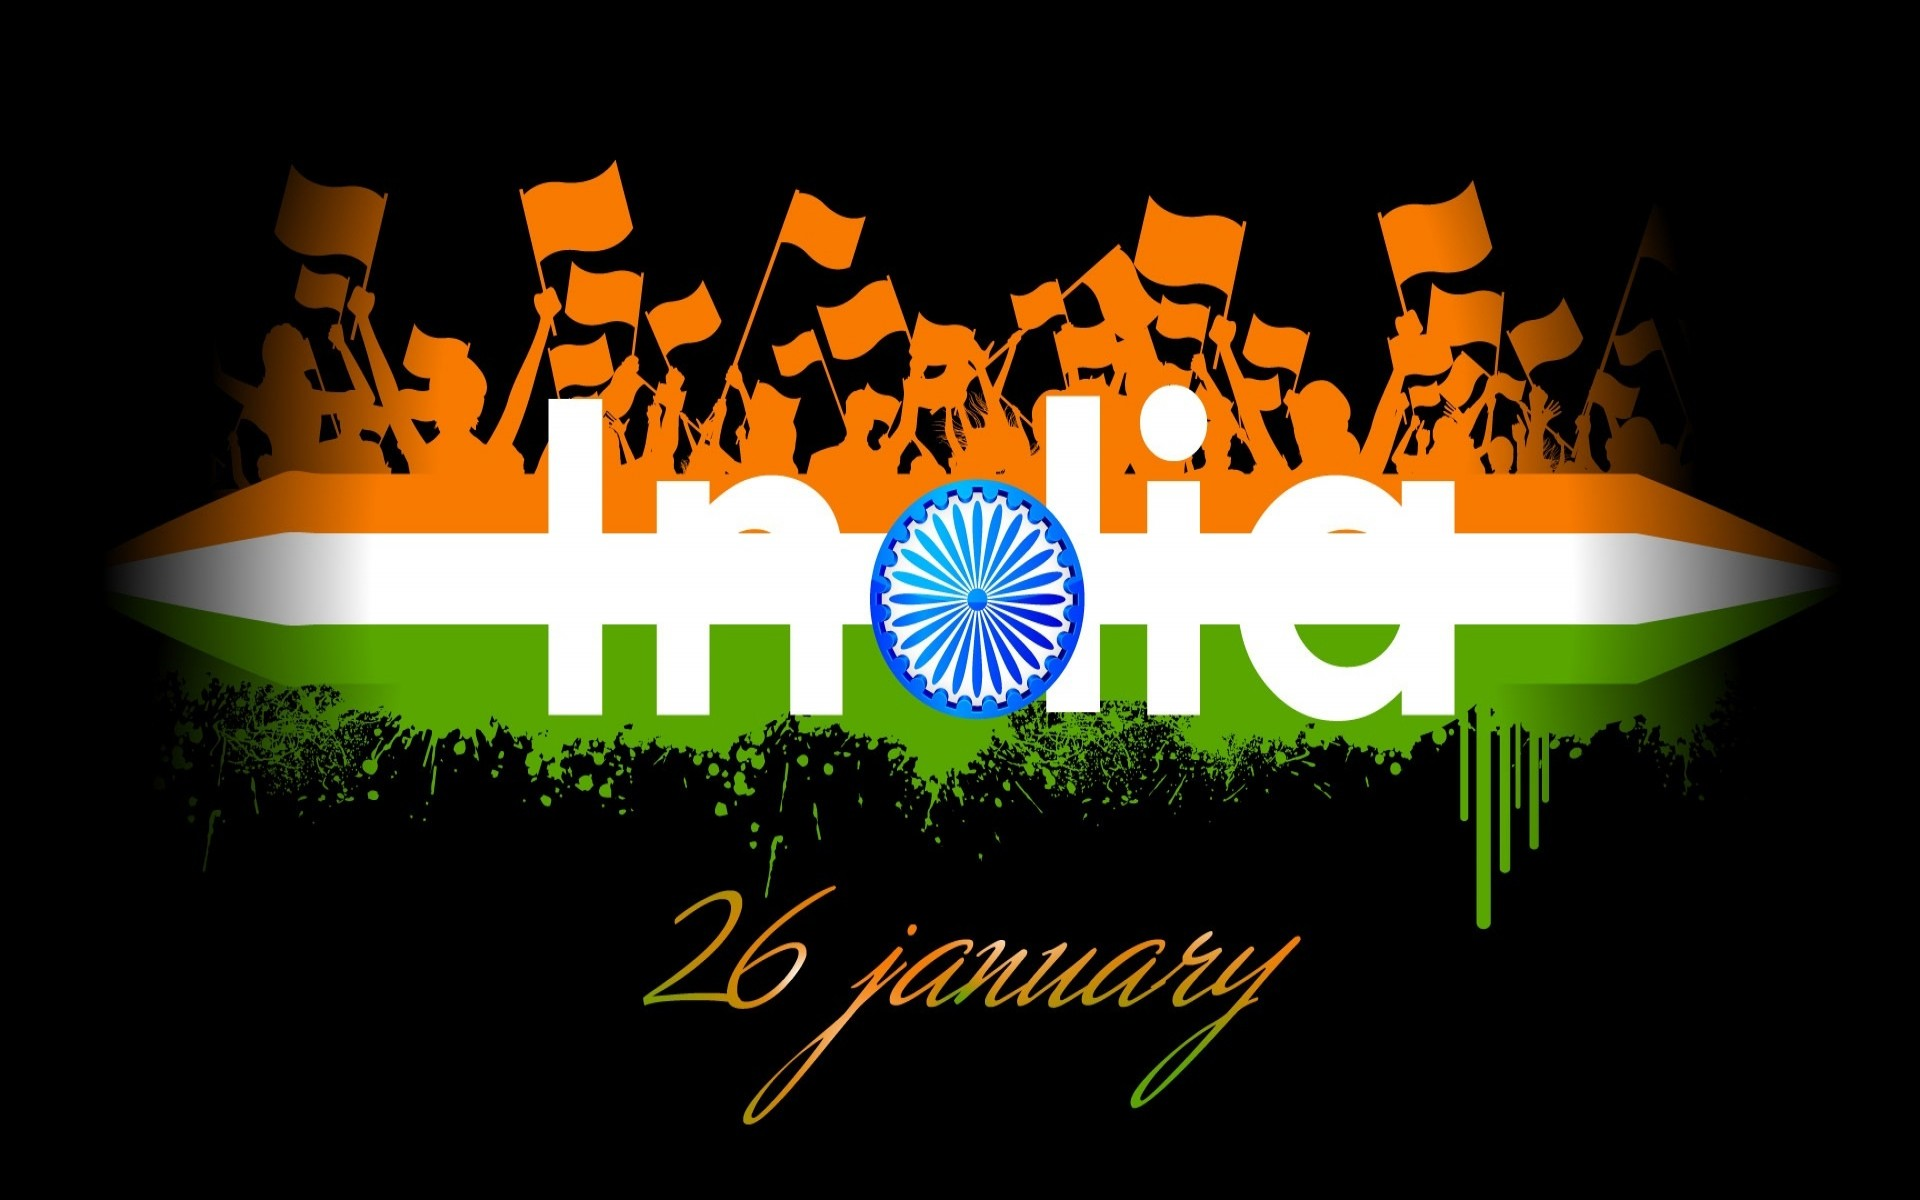 Wallpaper download india - Download Republic Day Hd Wallpapers India